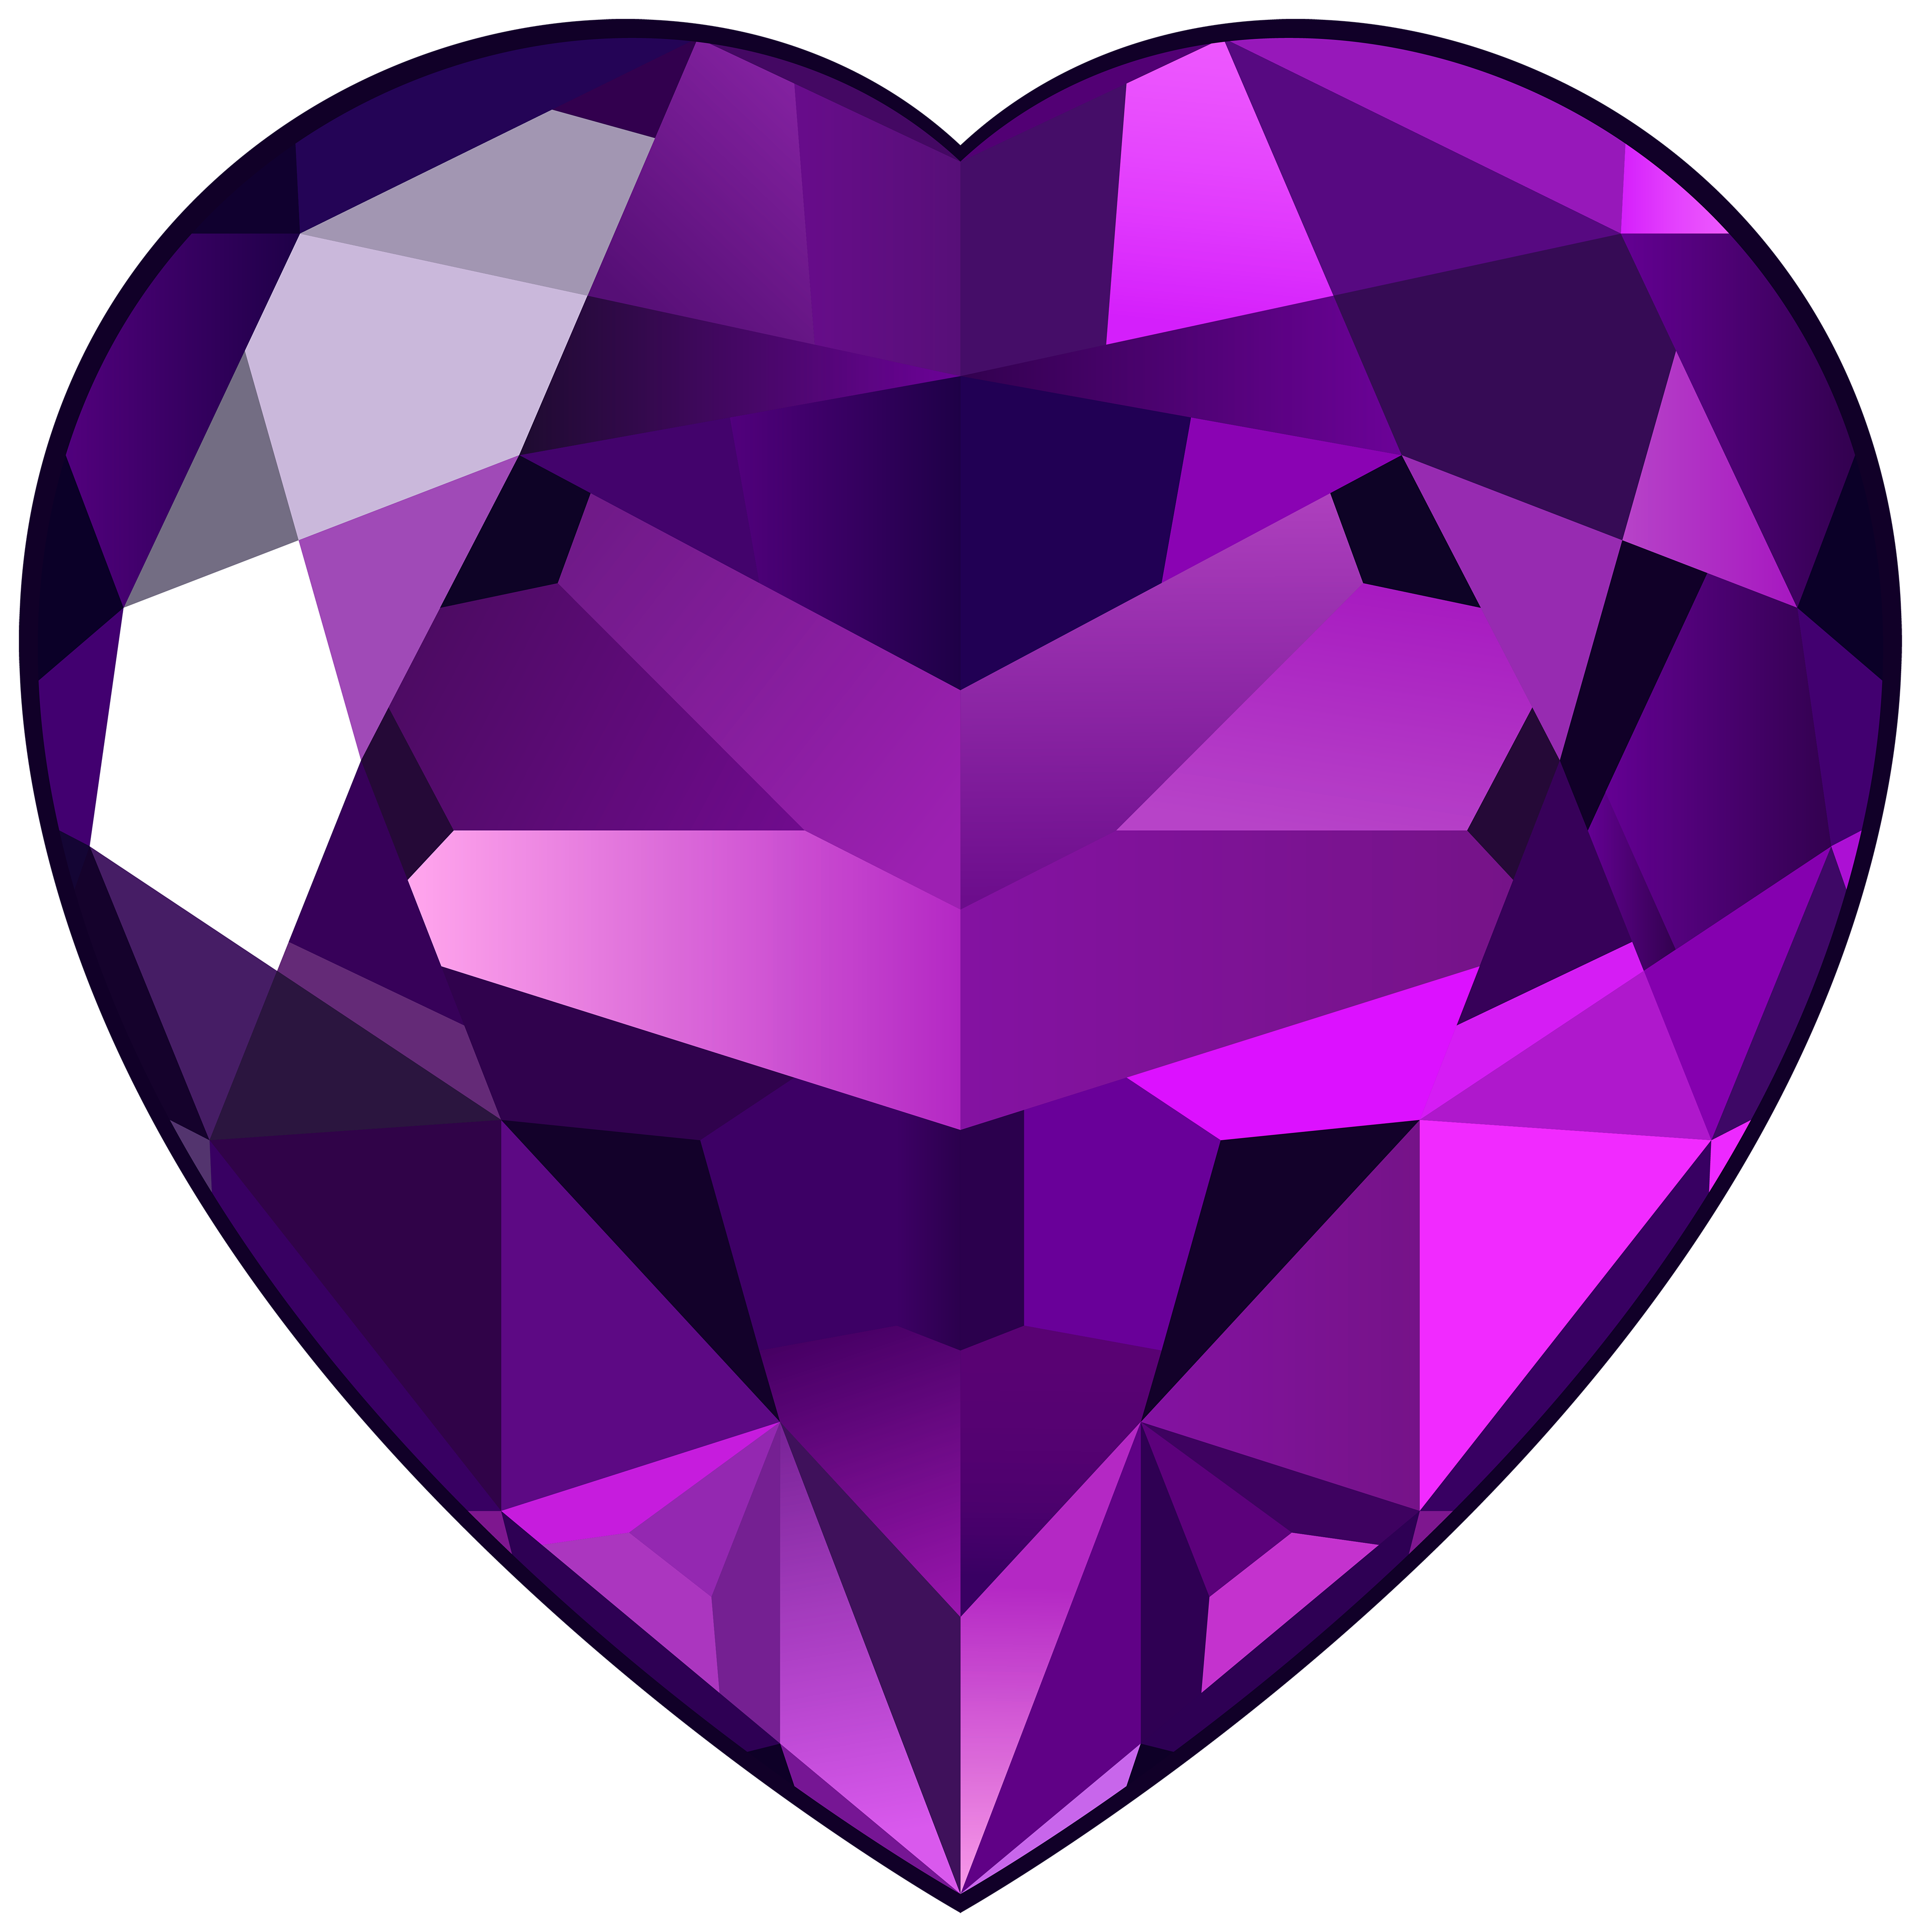 Lights clipart purple heart. Amethyst png best web